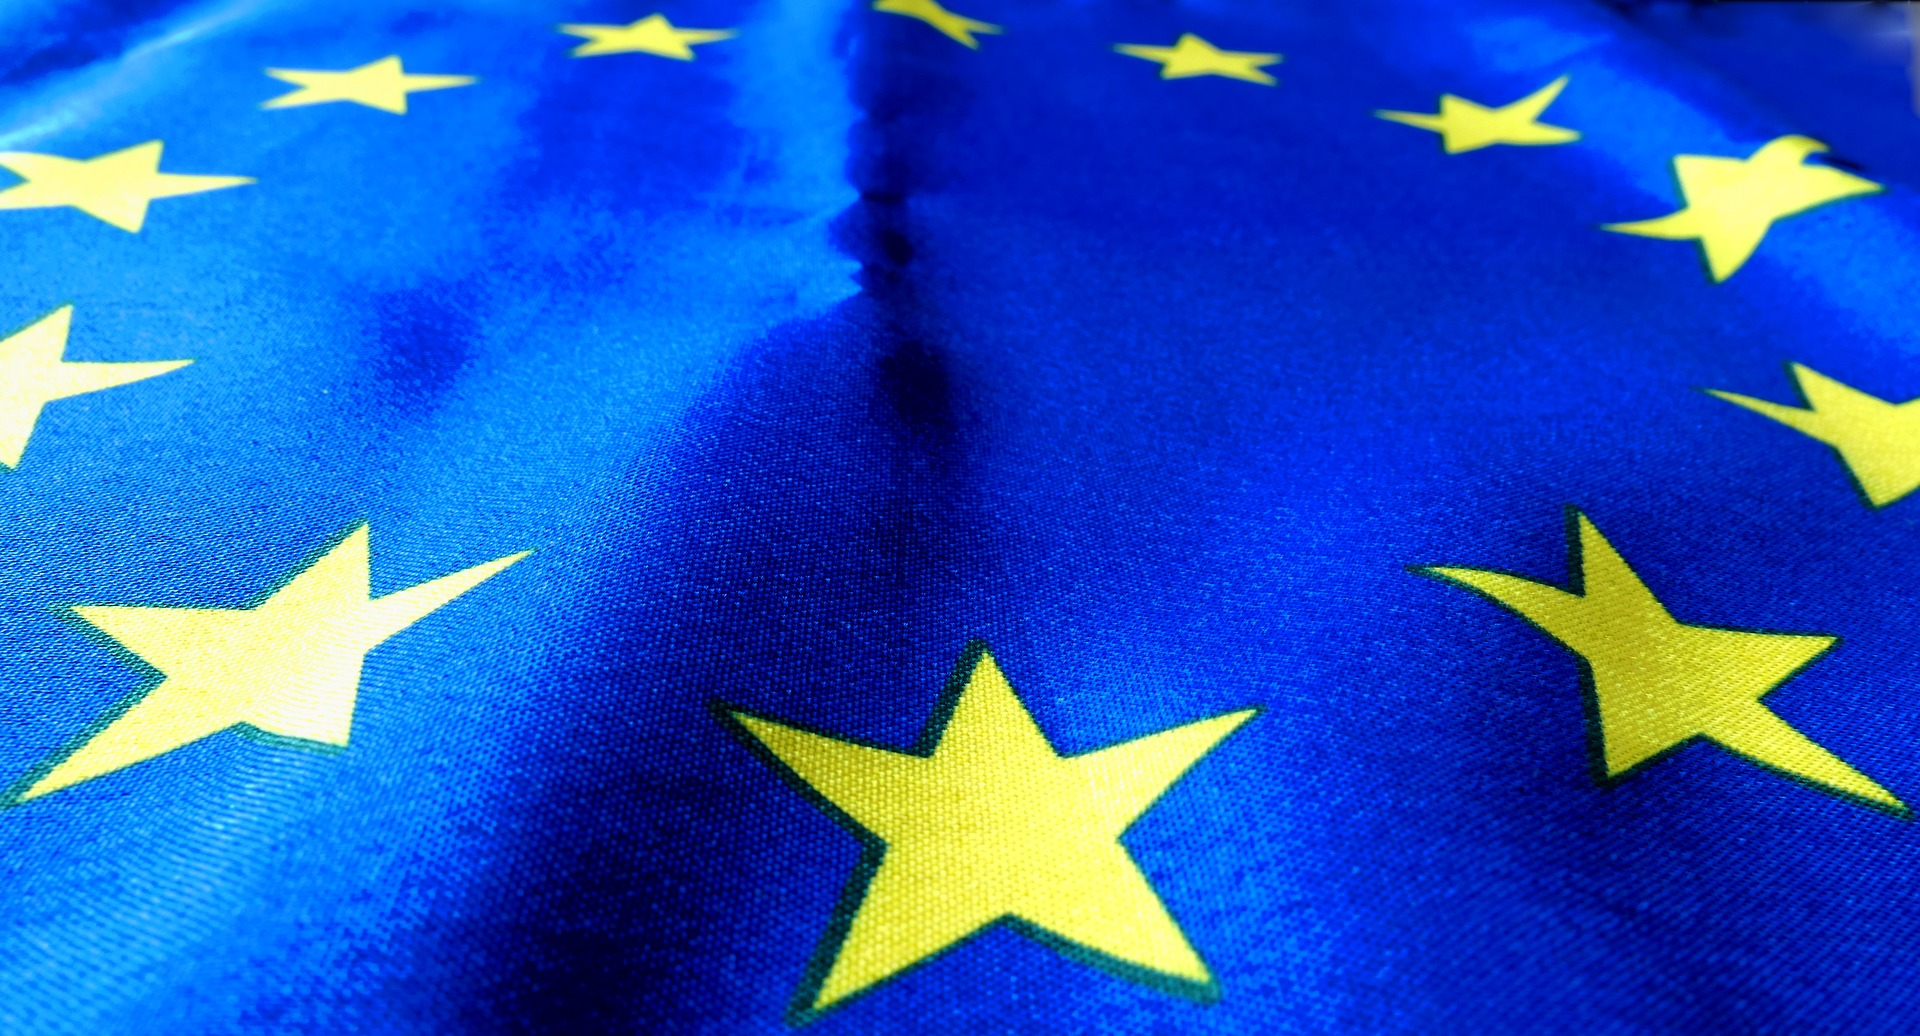 Close-up from the European Union flag.